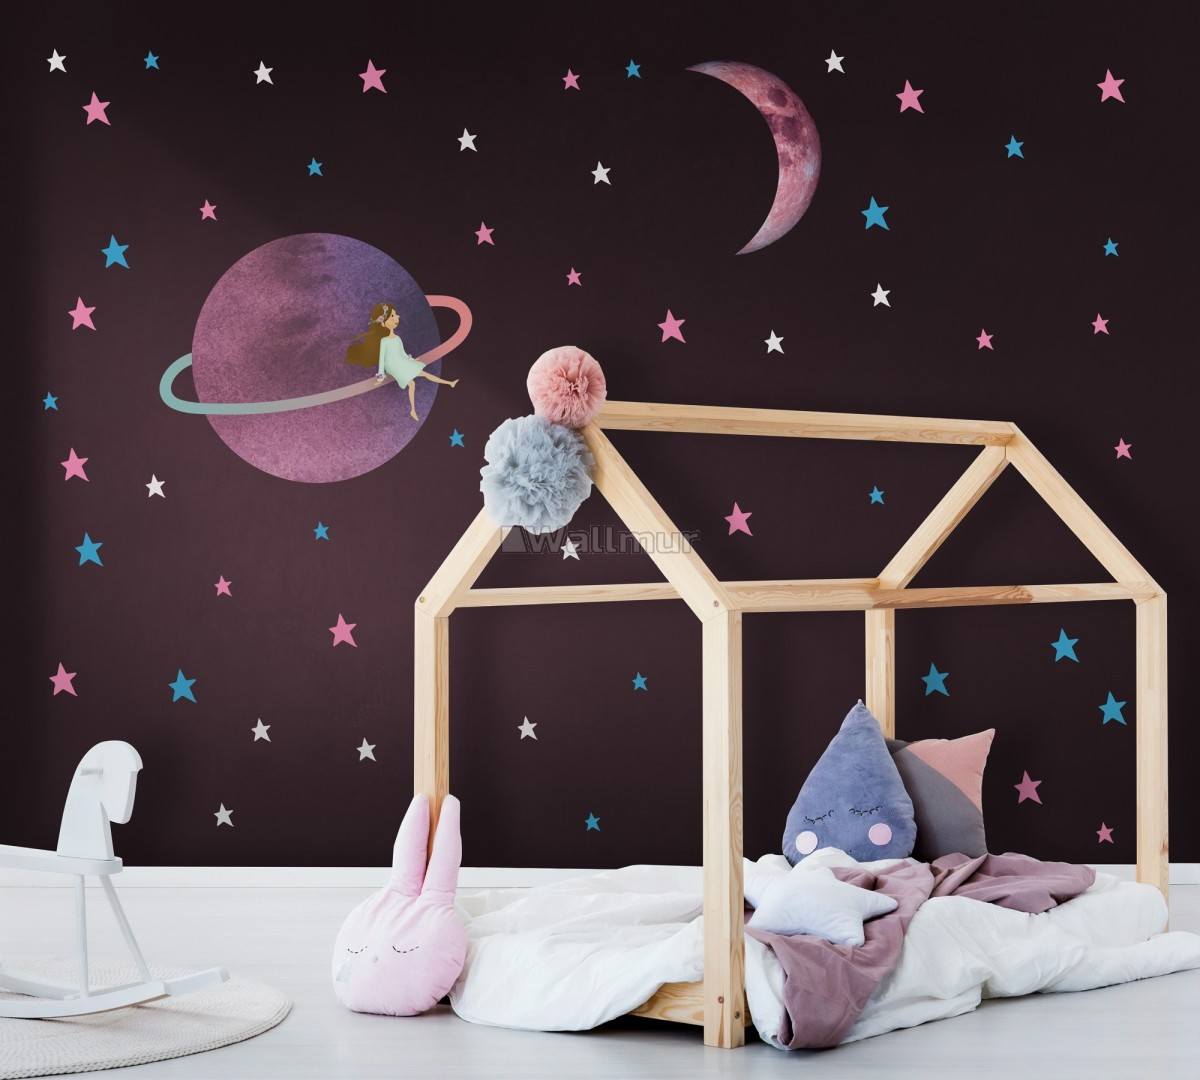 Colorful Space with Cute Little Girl on the Saturn Rings and Pink Moon Wall Decal Sticker